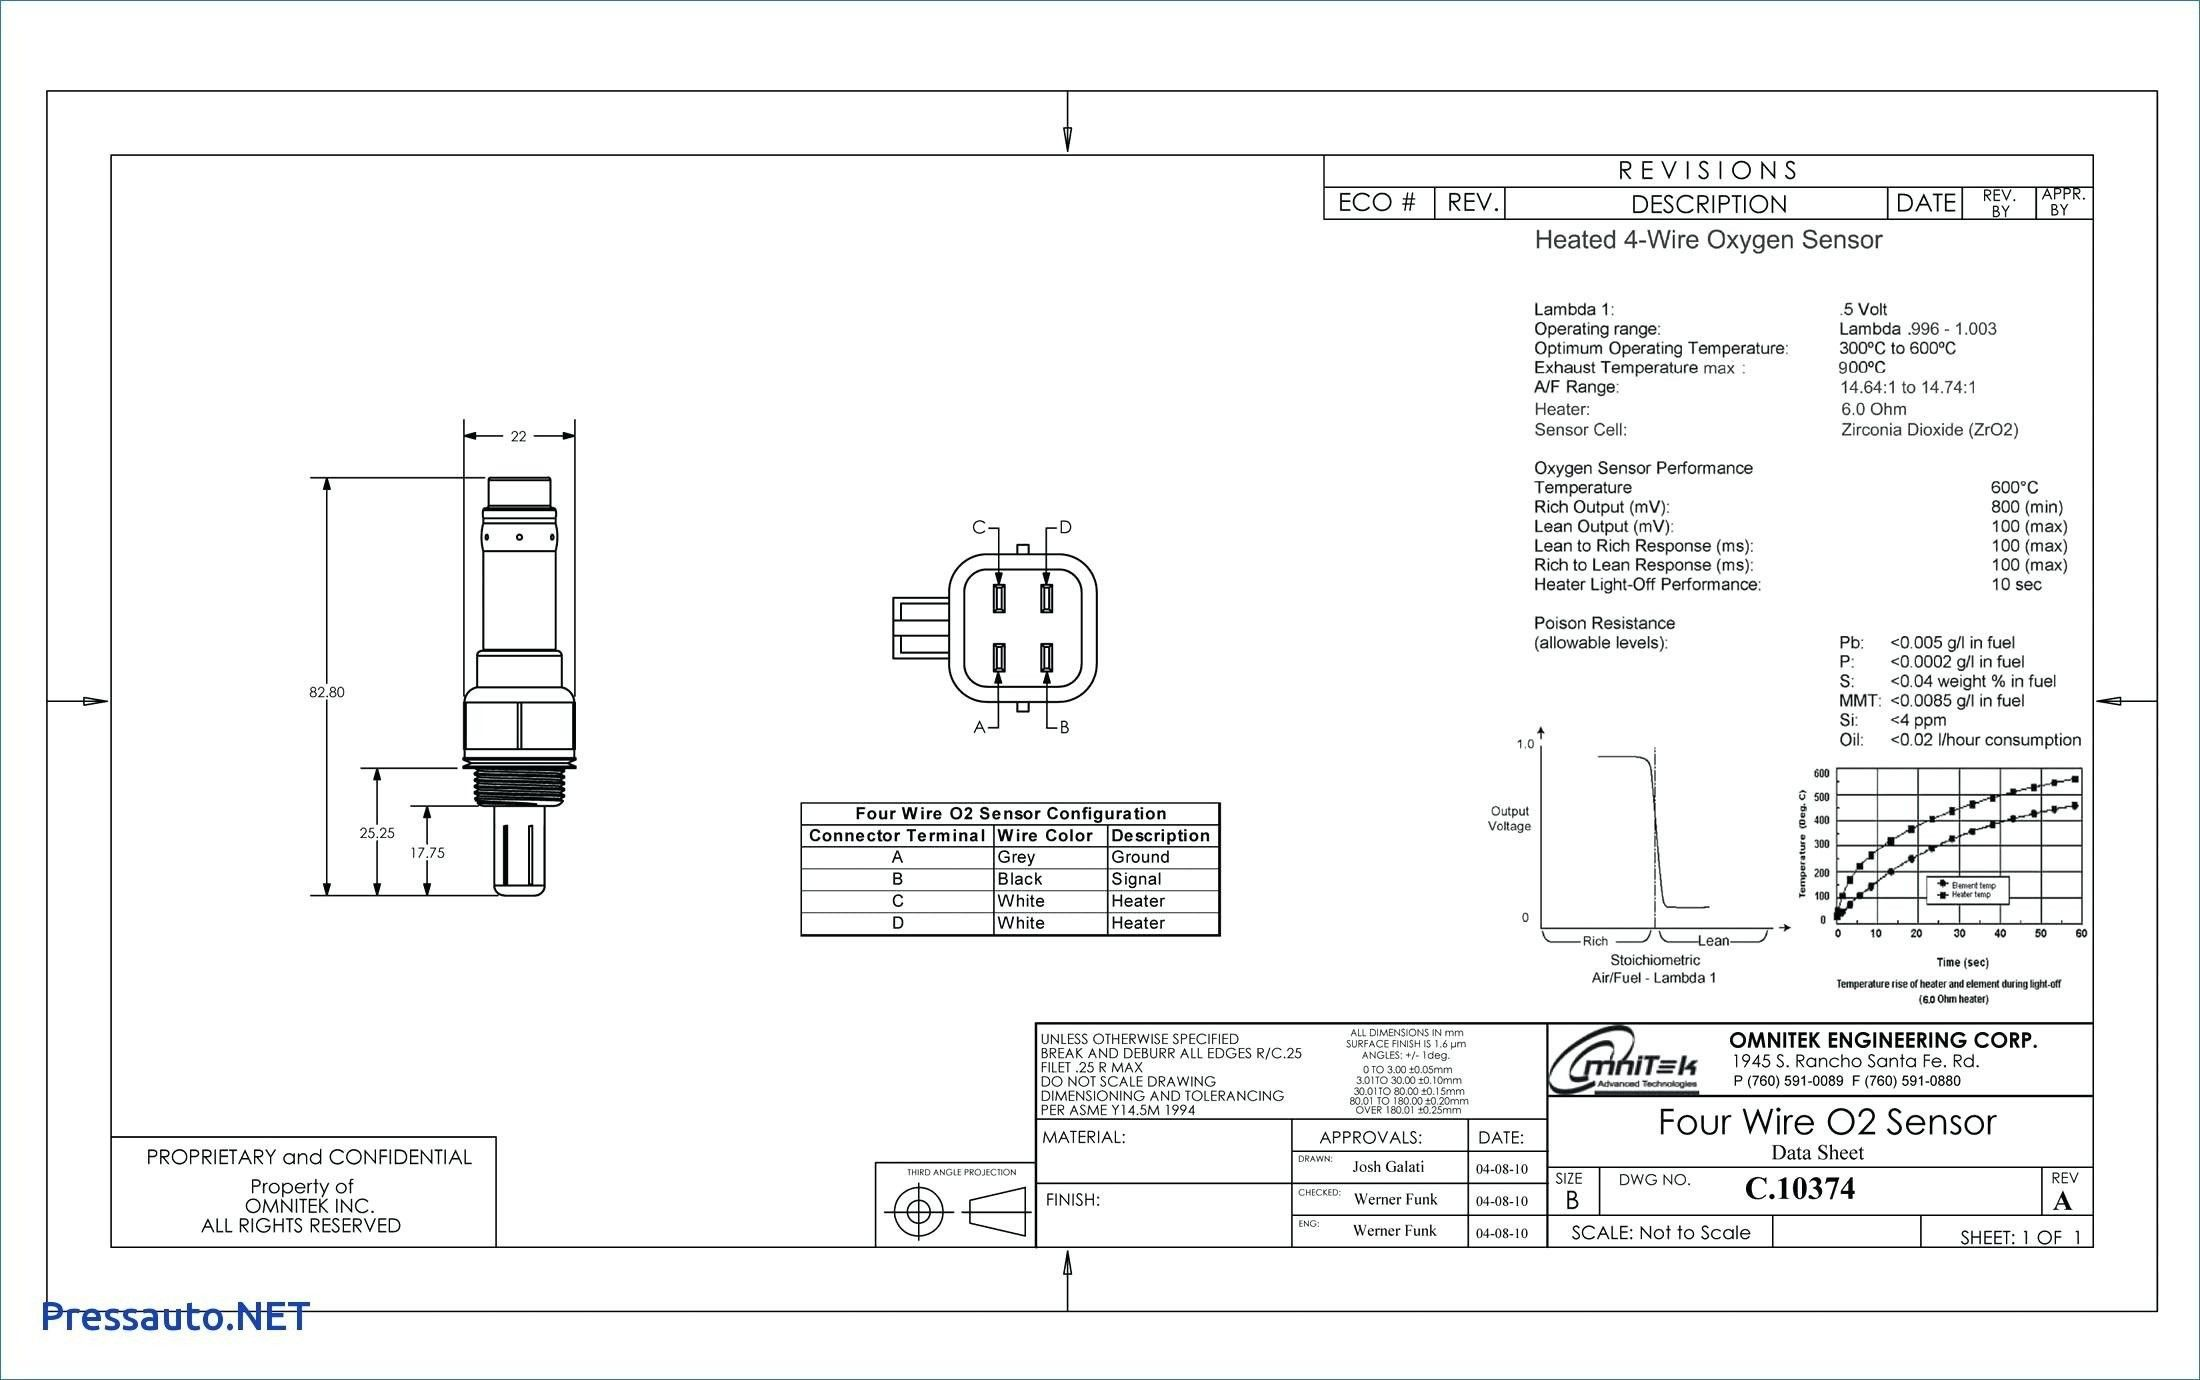 Unique Wiring Diagram Worcester Bosch Diagrams Digramssample Diagramimages Diagram Oxygen Sensor